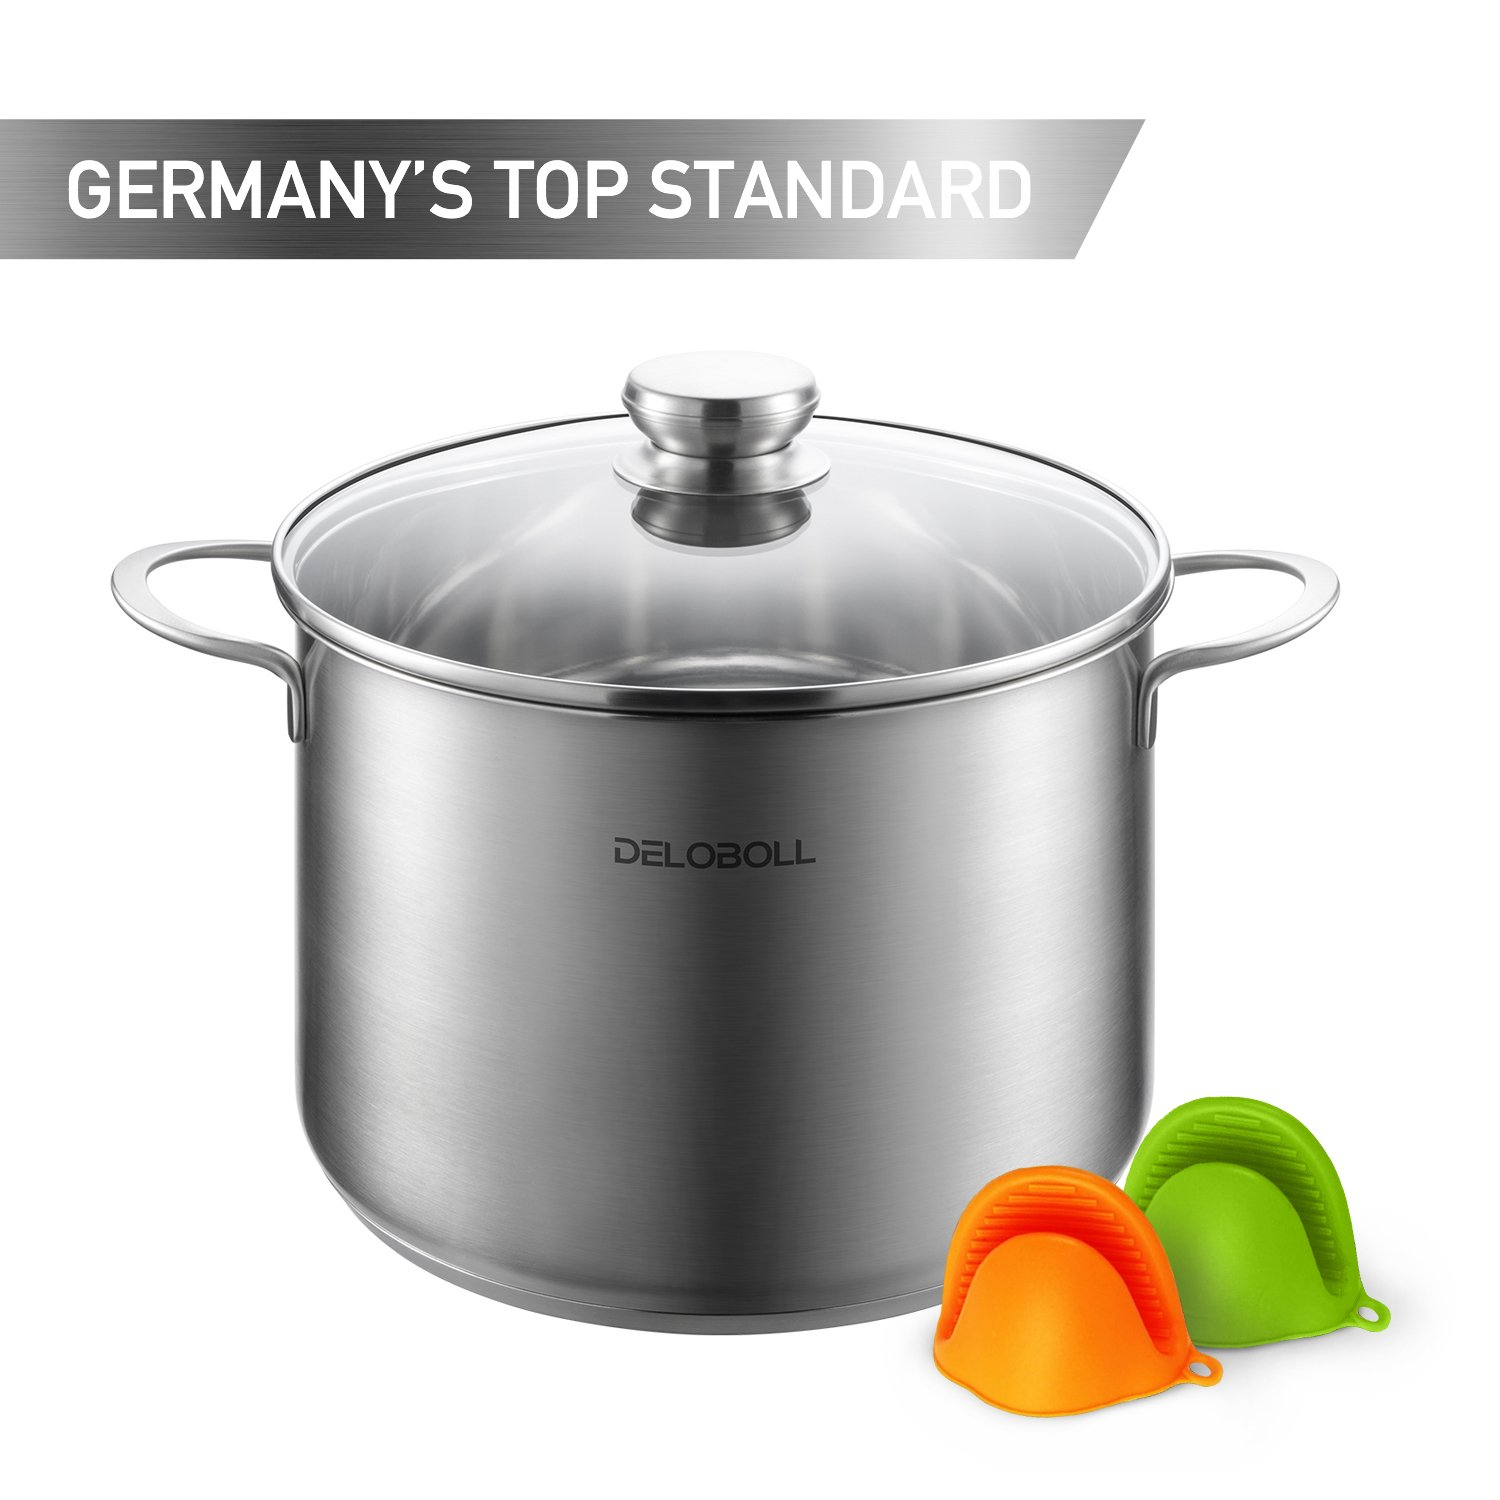 DELOBOLL 8.5 Quart Tri-Ply Base Covered Stainless Steel Stockpot, GERMAN STANDARD, Multi-clad Base Induction Cookware, Dishwasher Safe Soup Pot with Lid + 2 silicone oven mitts